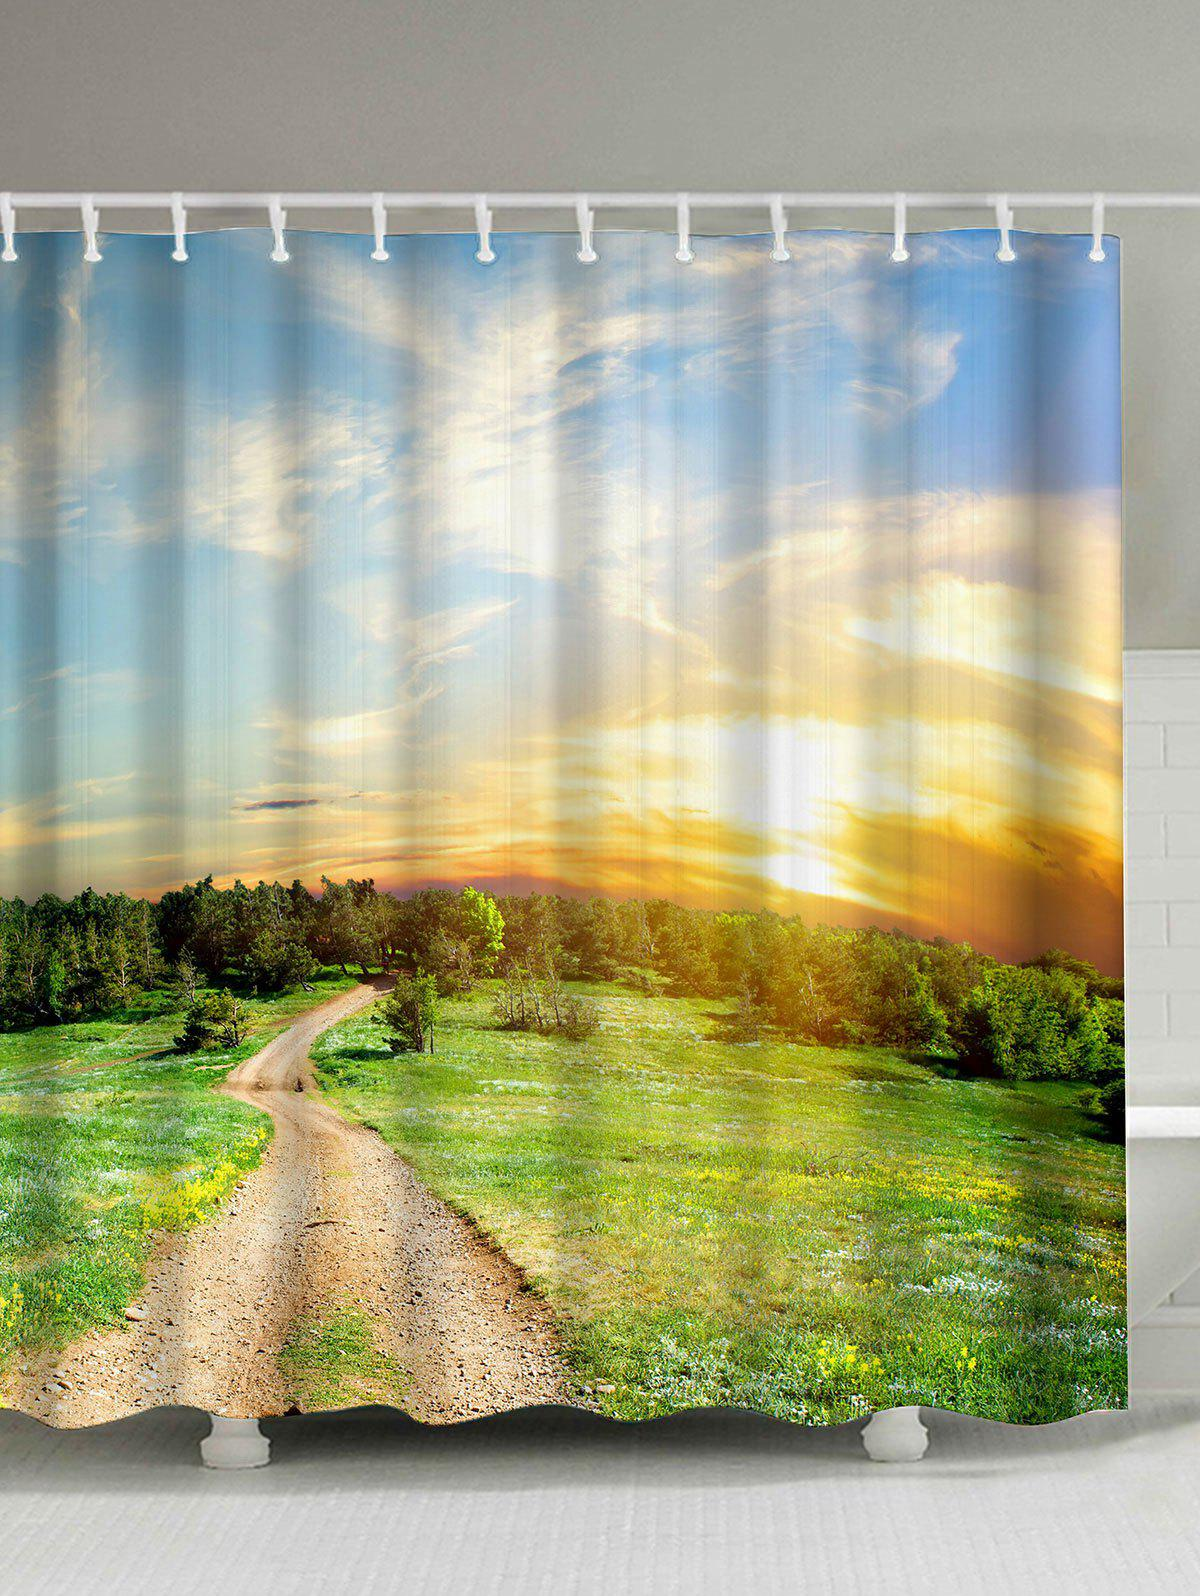 nature scenery print waterproof fabric shower curtain colormix 2 cm